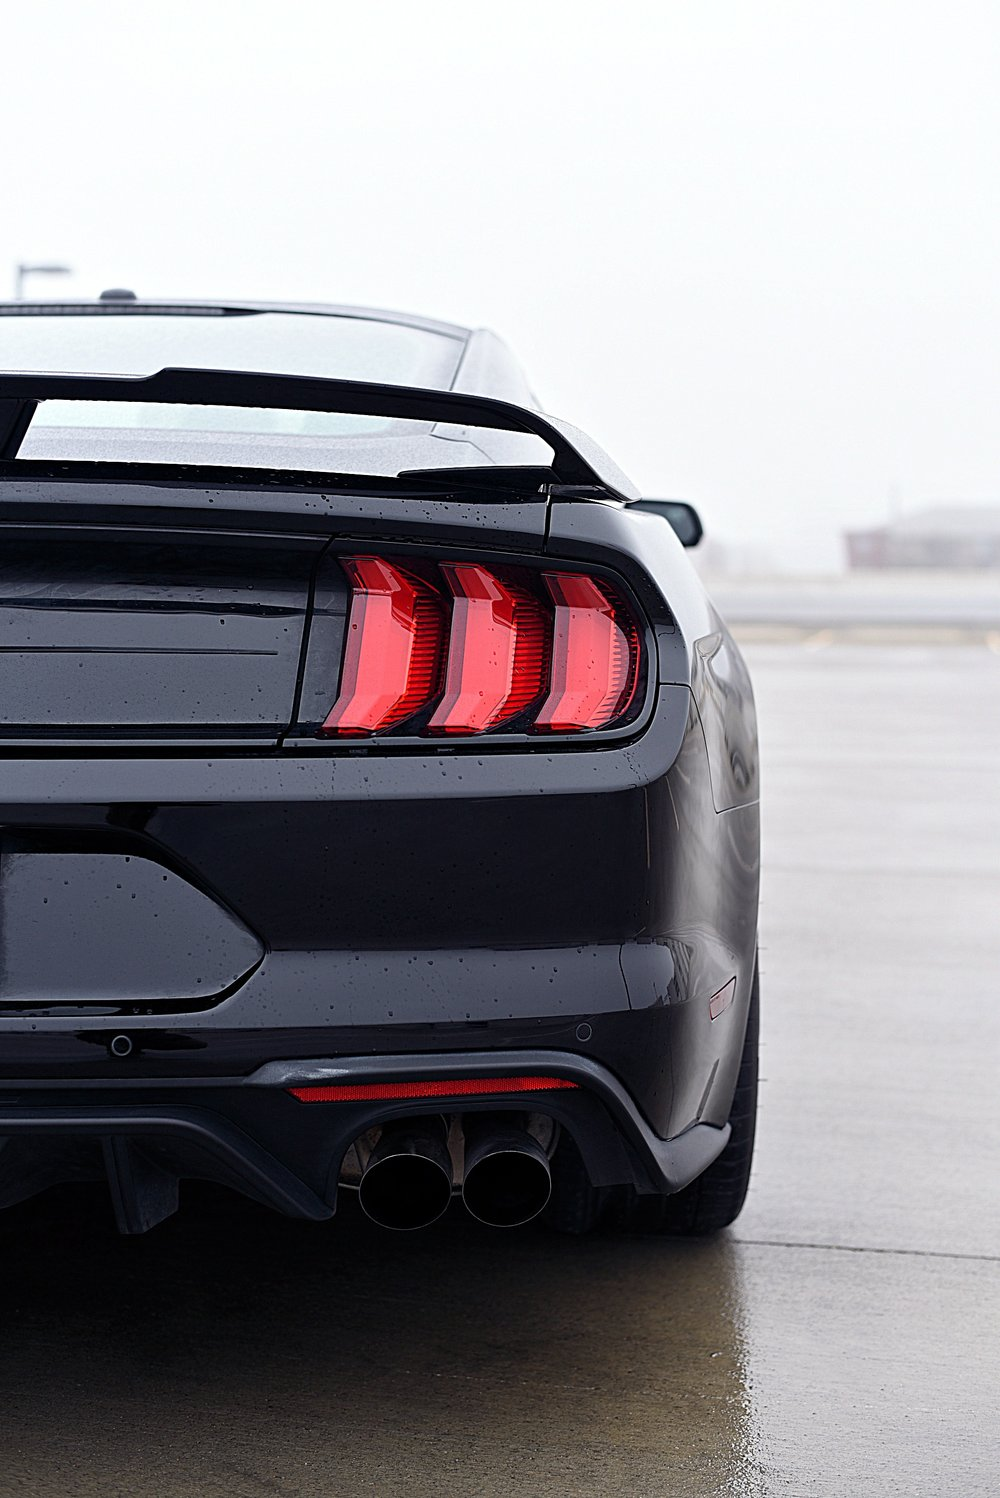 Mustang-Tail-Lights2.jpg